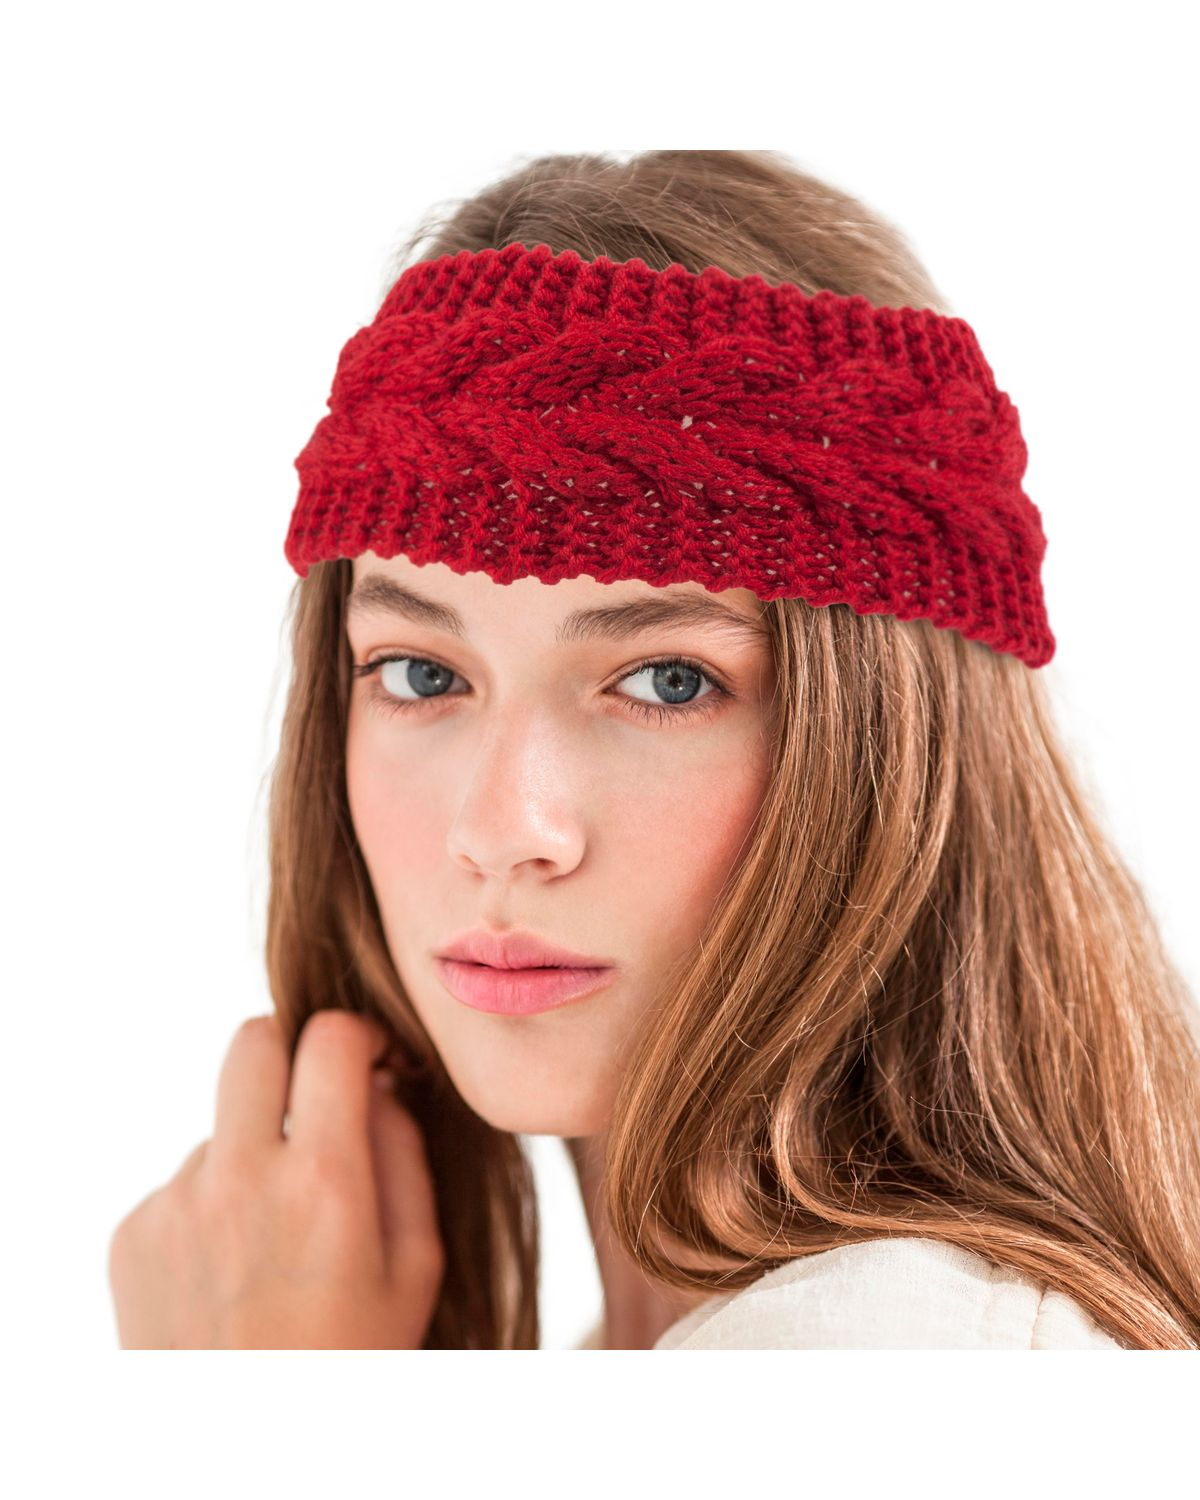 Kids Baby Big Button Knitted Wide Headband Crochet Warm Ear Hairband Solid Color